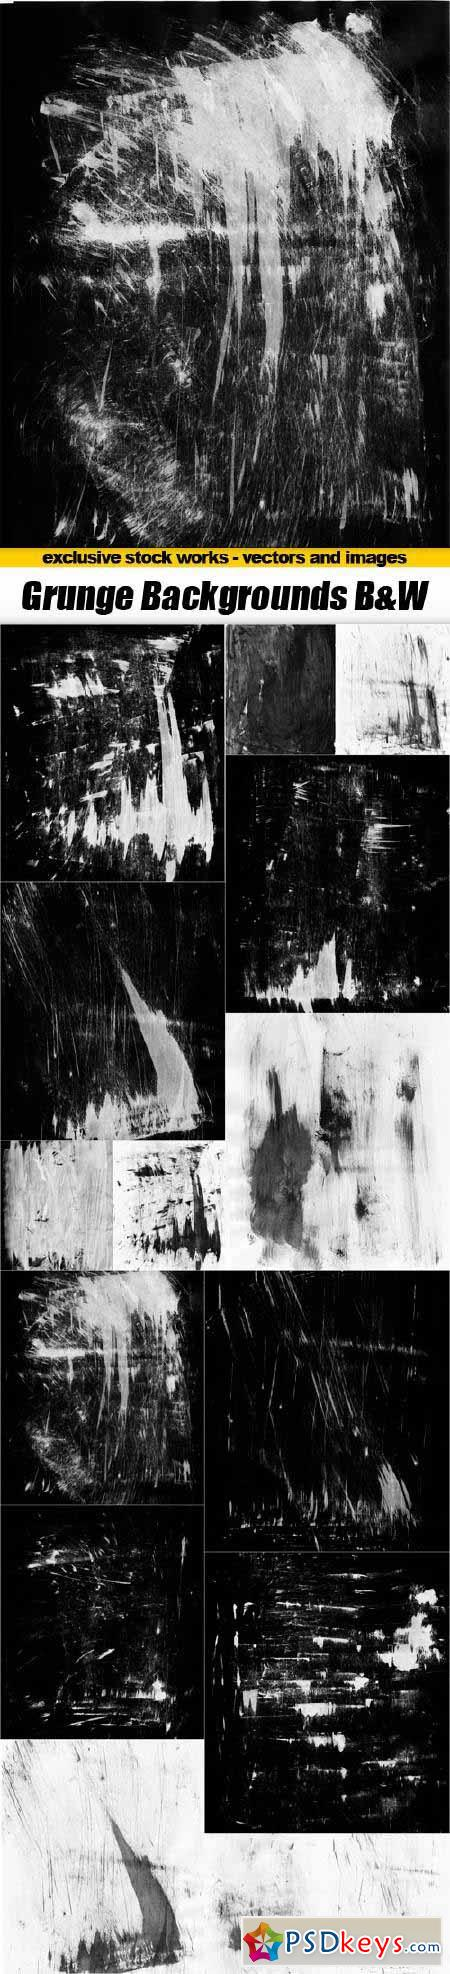 Grunge Backgrounds Black And White - 15x JPEGs